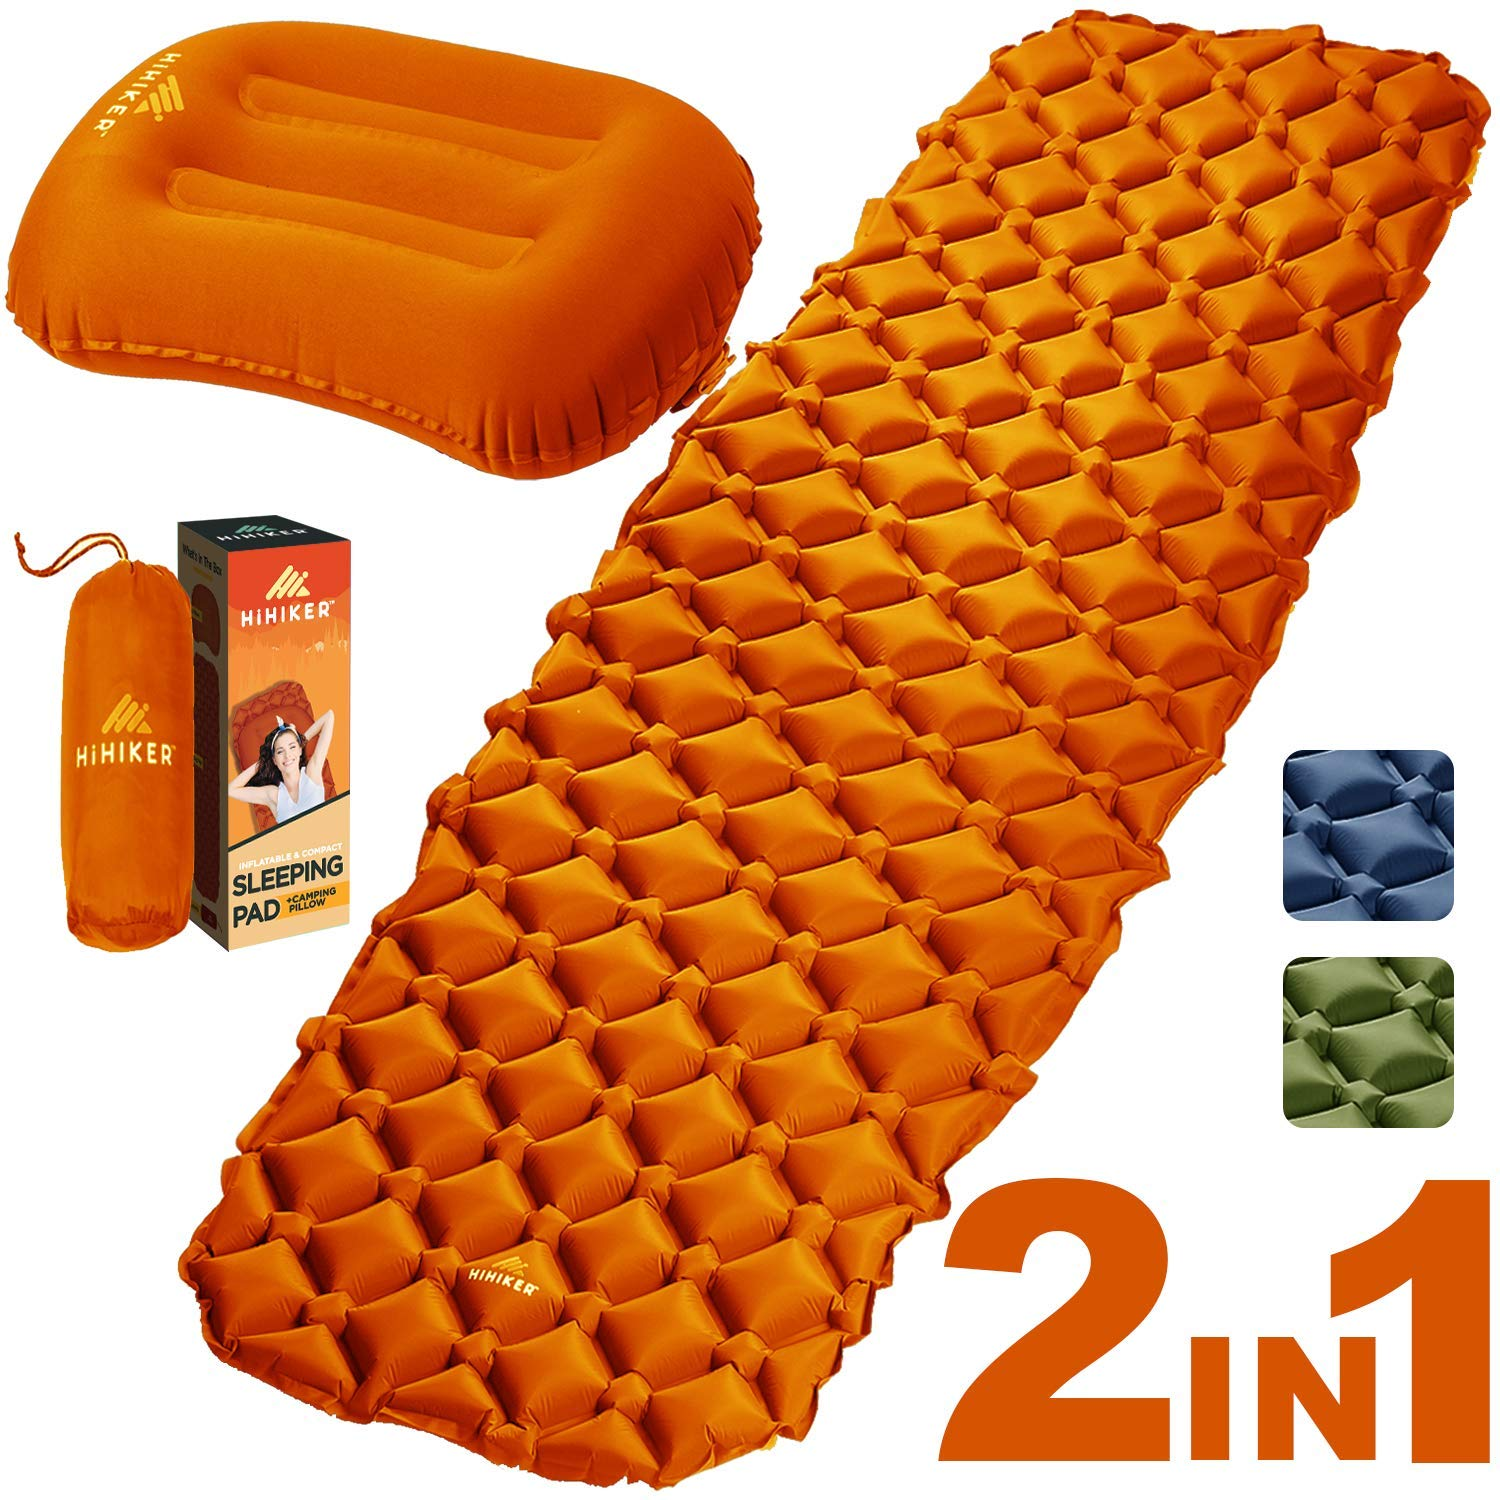 HiHiker Camping Sleeping Pad + Inflatable Travel Pillow - Ultralight Backpacking Air Mattress w/Compact Carrying Bag -Sleeping Mat for Hiking Traveling & Outdoor Activities (Orange) by HiHiker